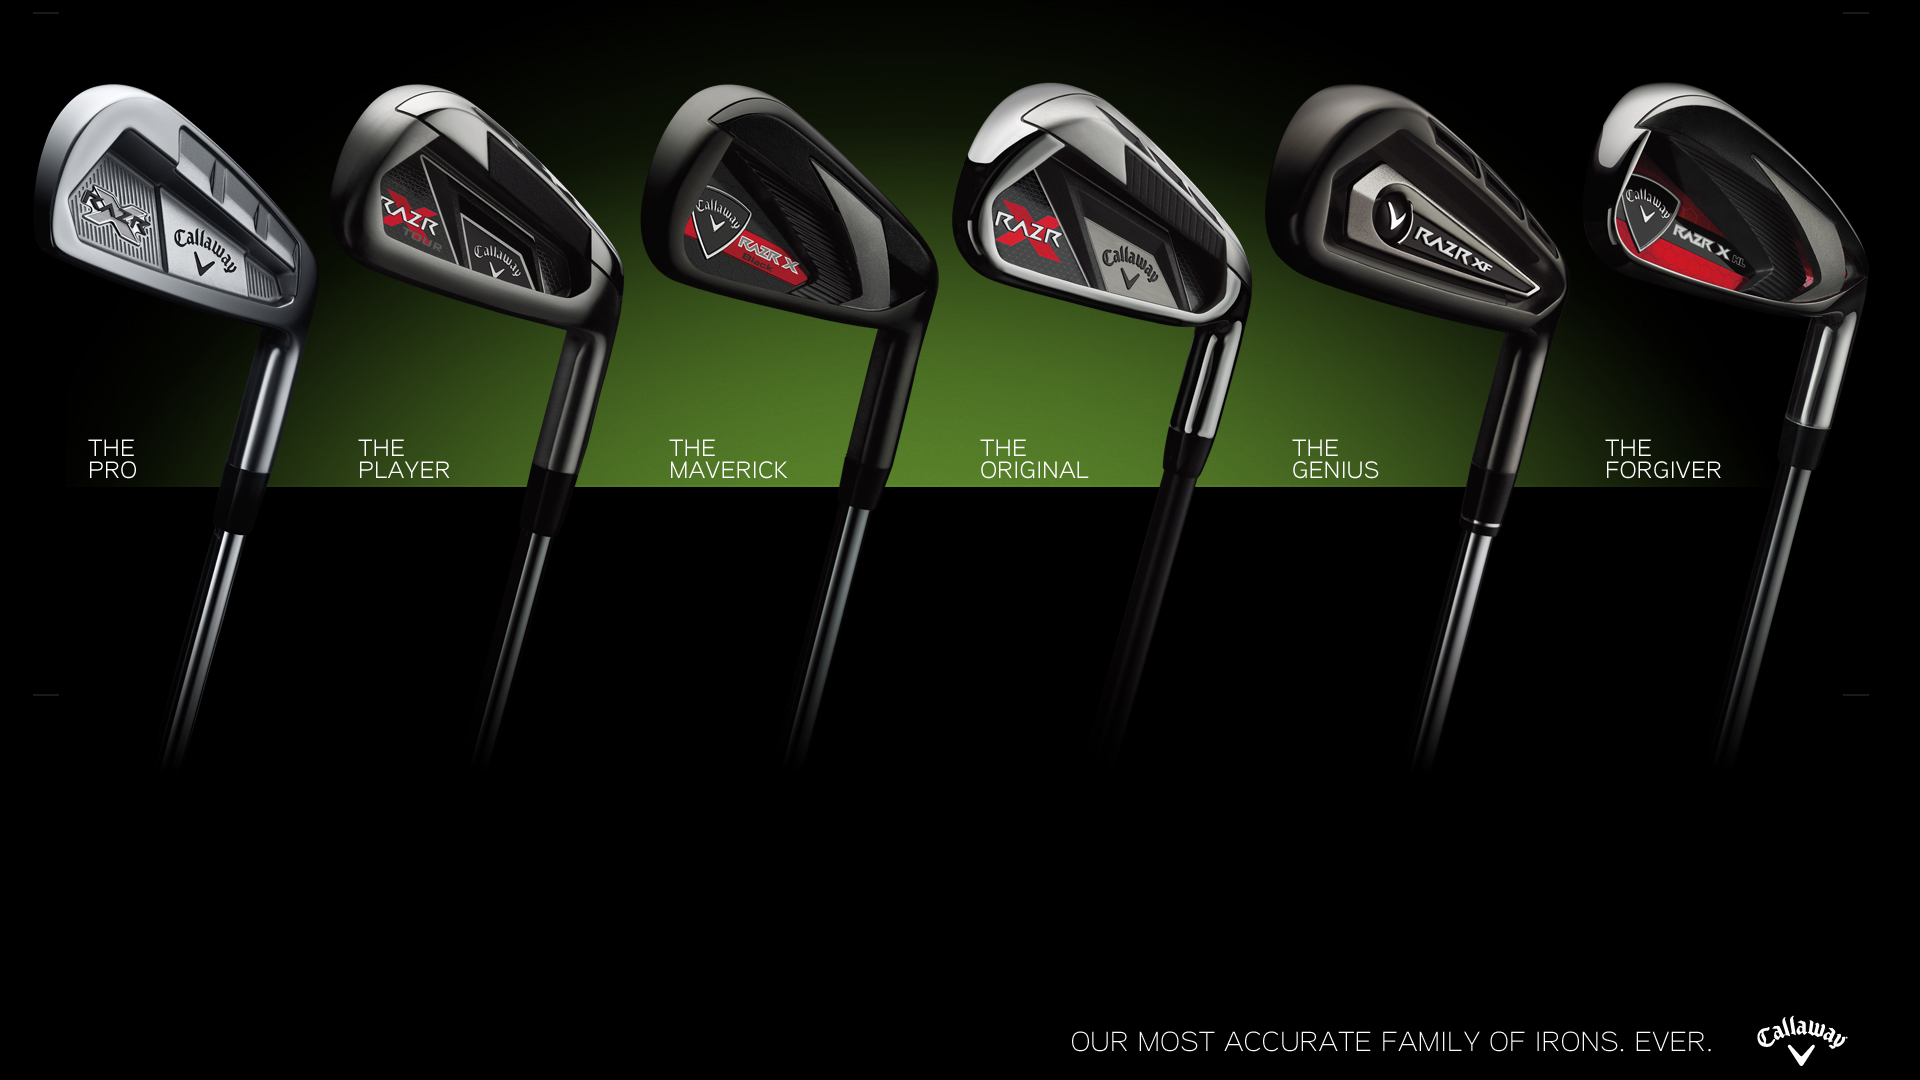 callaway golf wallpaper background - photo #2